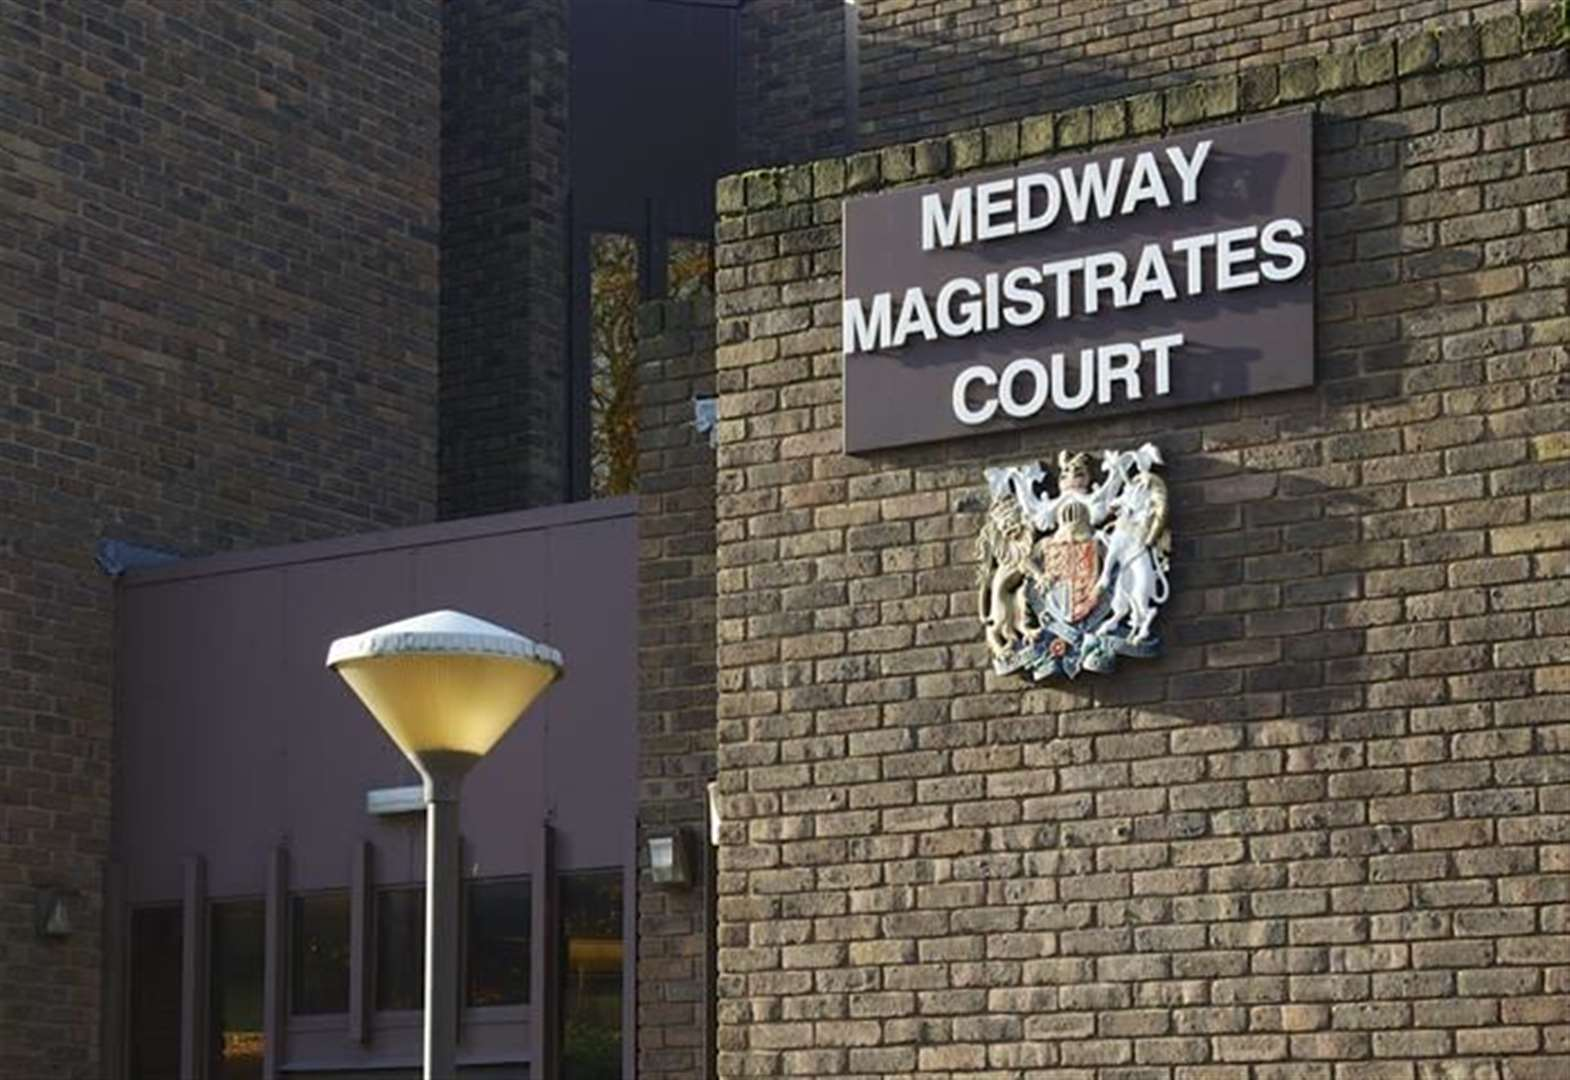 Latest results from magistrates' court